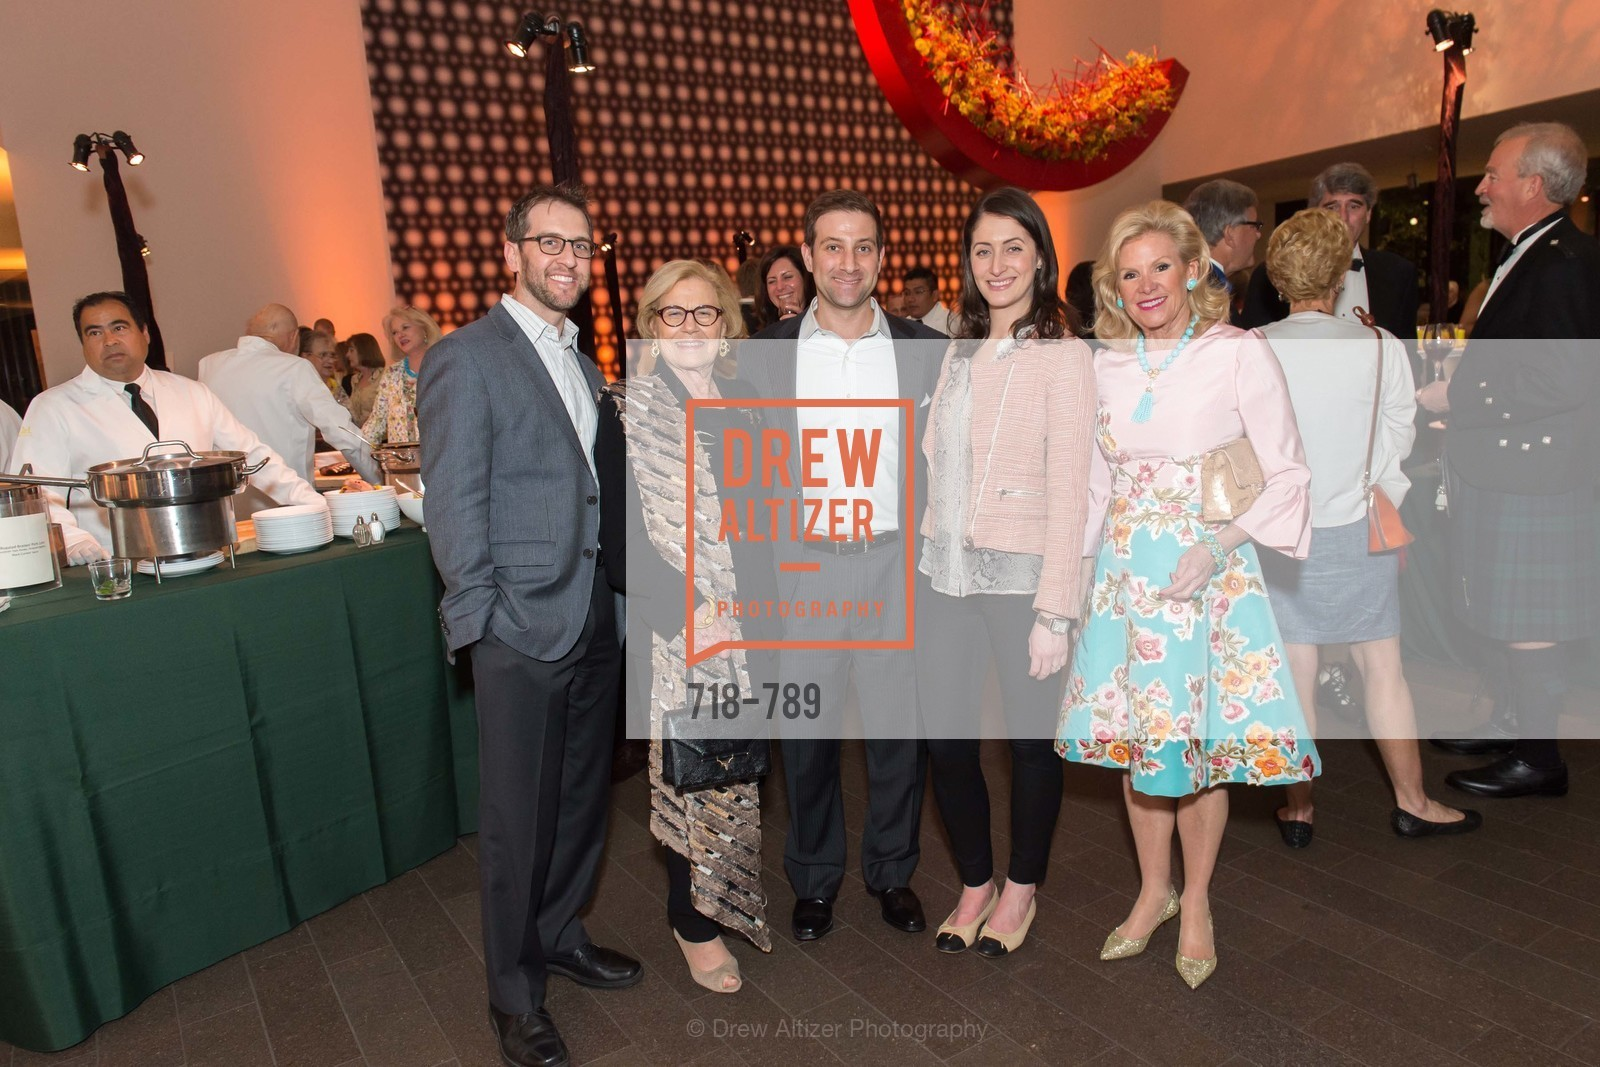 Aaron Saxe, Dorothy Saxe, David Saxe, Jen Sockolov, Dede Wilsey, ALONZO KING LINE'S Ballet Spring Gala 2015, US, April 11th, 2015,Drew Altizer, Drew Altizer Photography, full-service agency, private events, San Francisco photographer, photographer california